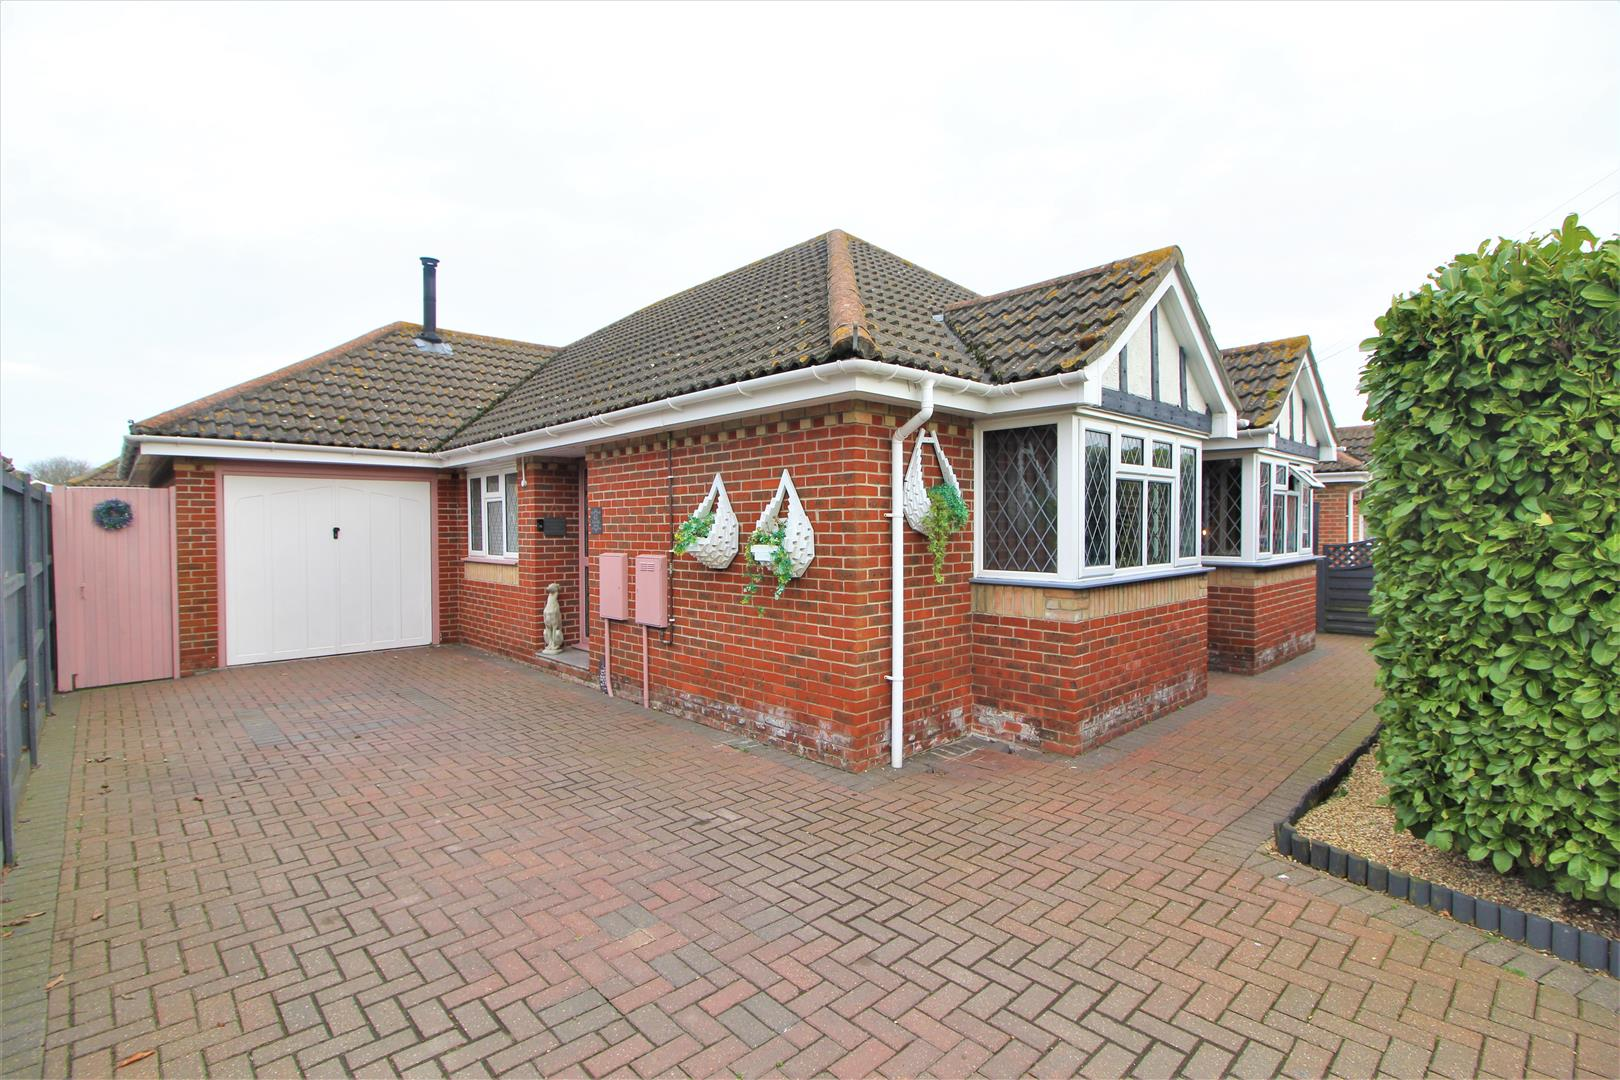 Feverills Road, Clacton-On-Sea, Essex, CO16 9NA